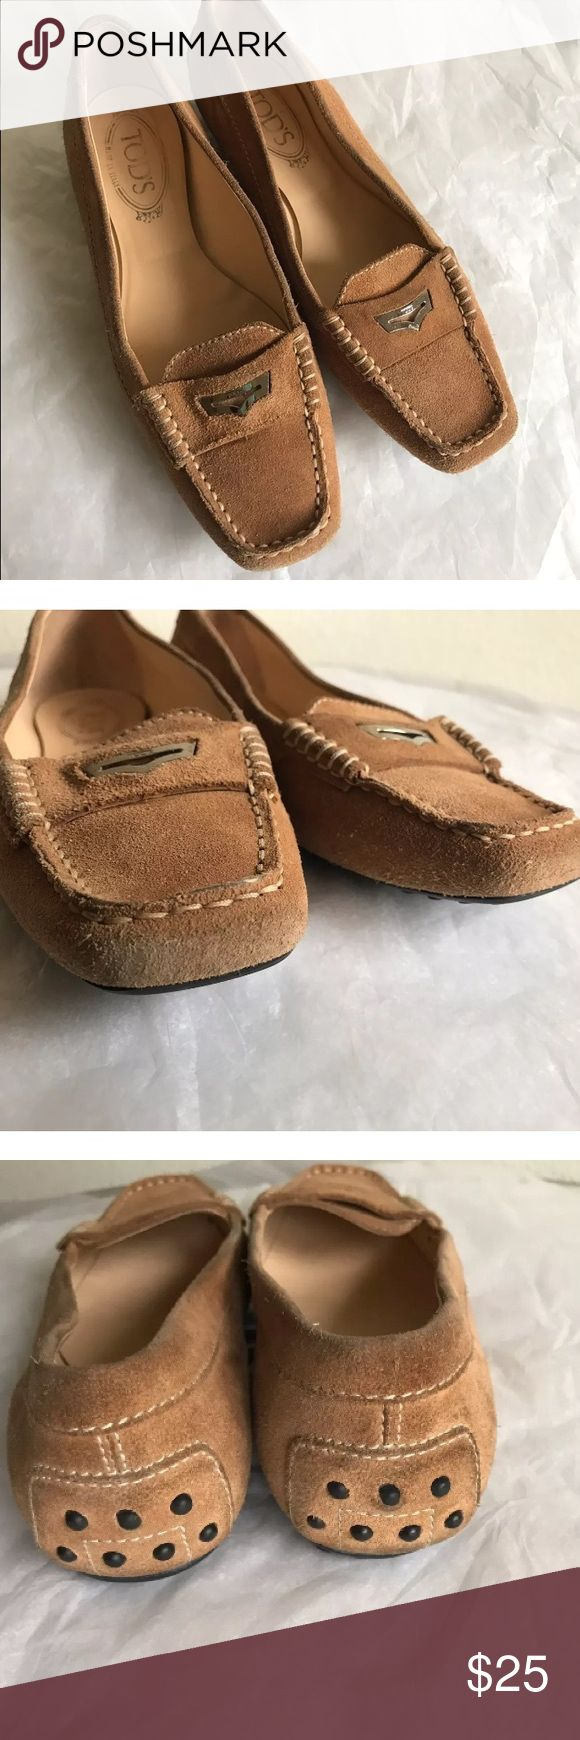 TODS Brown Suede Loafers Tod's Normal signs of wear on suede Tod's Shoes Flats & Loafers